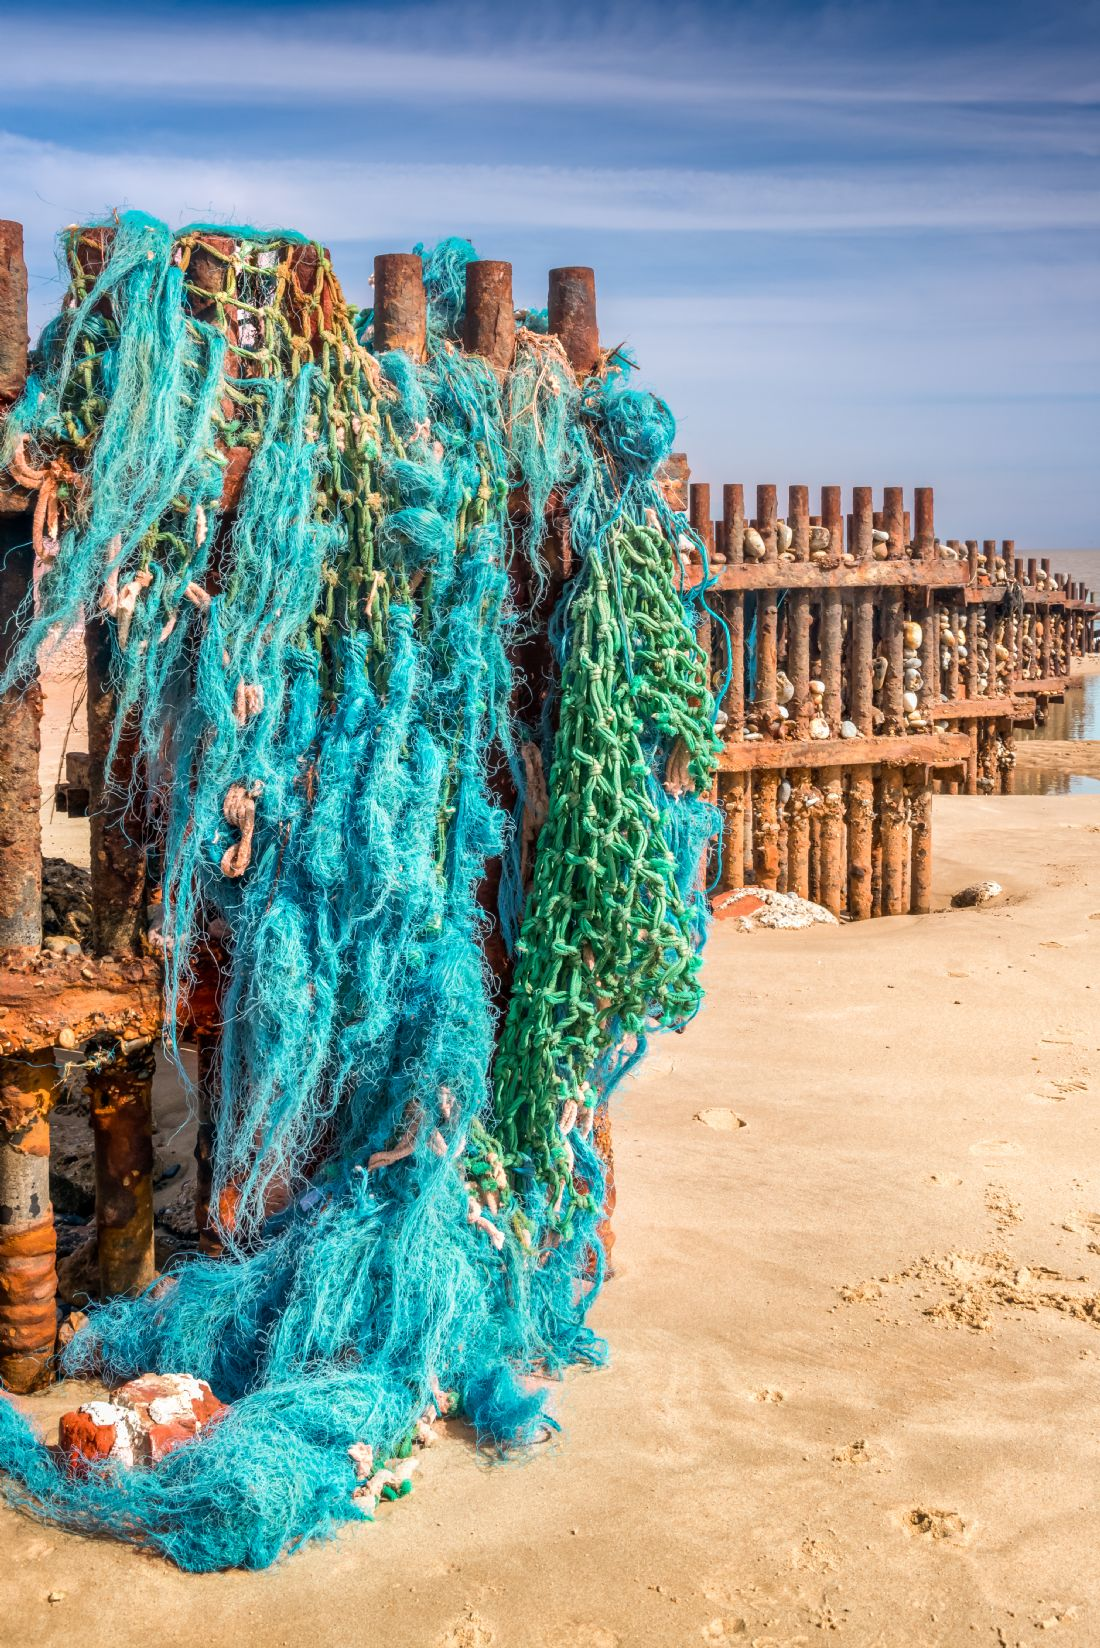 Stephen Mole | Fishing nets at Caister